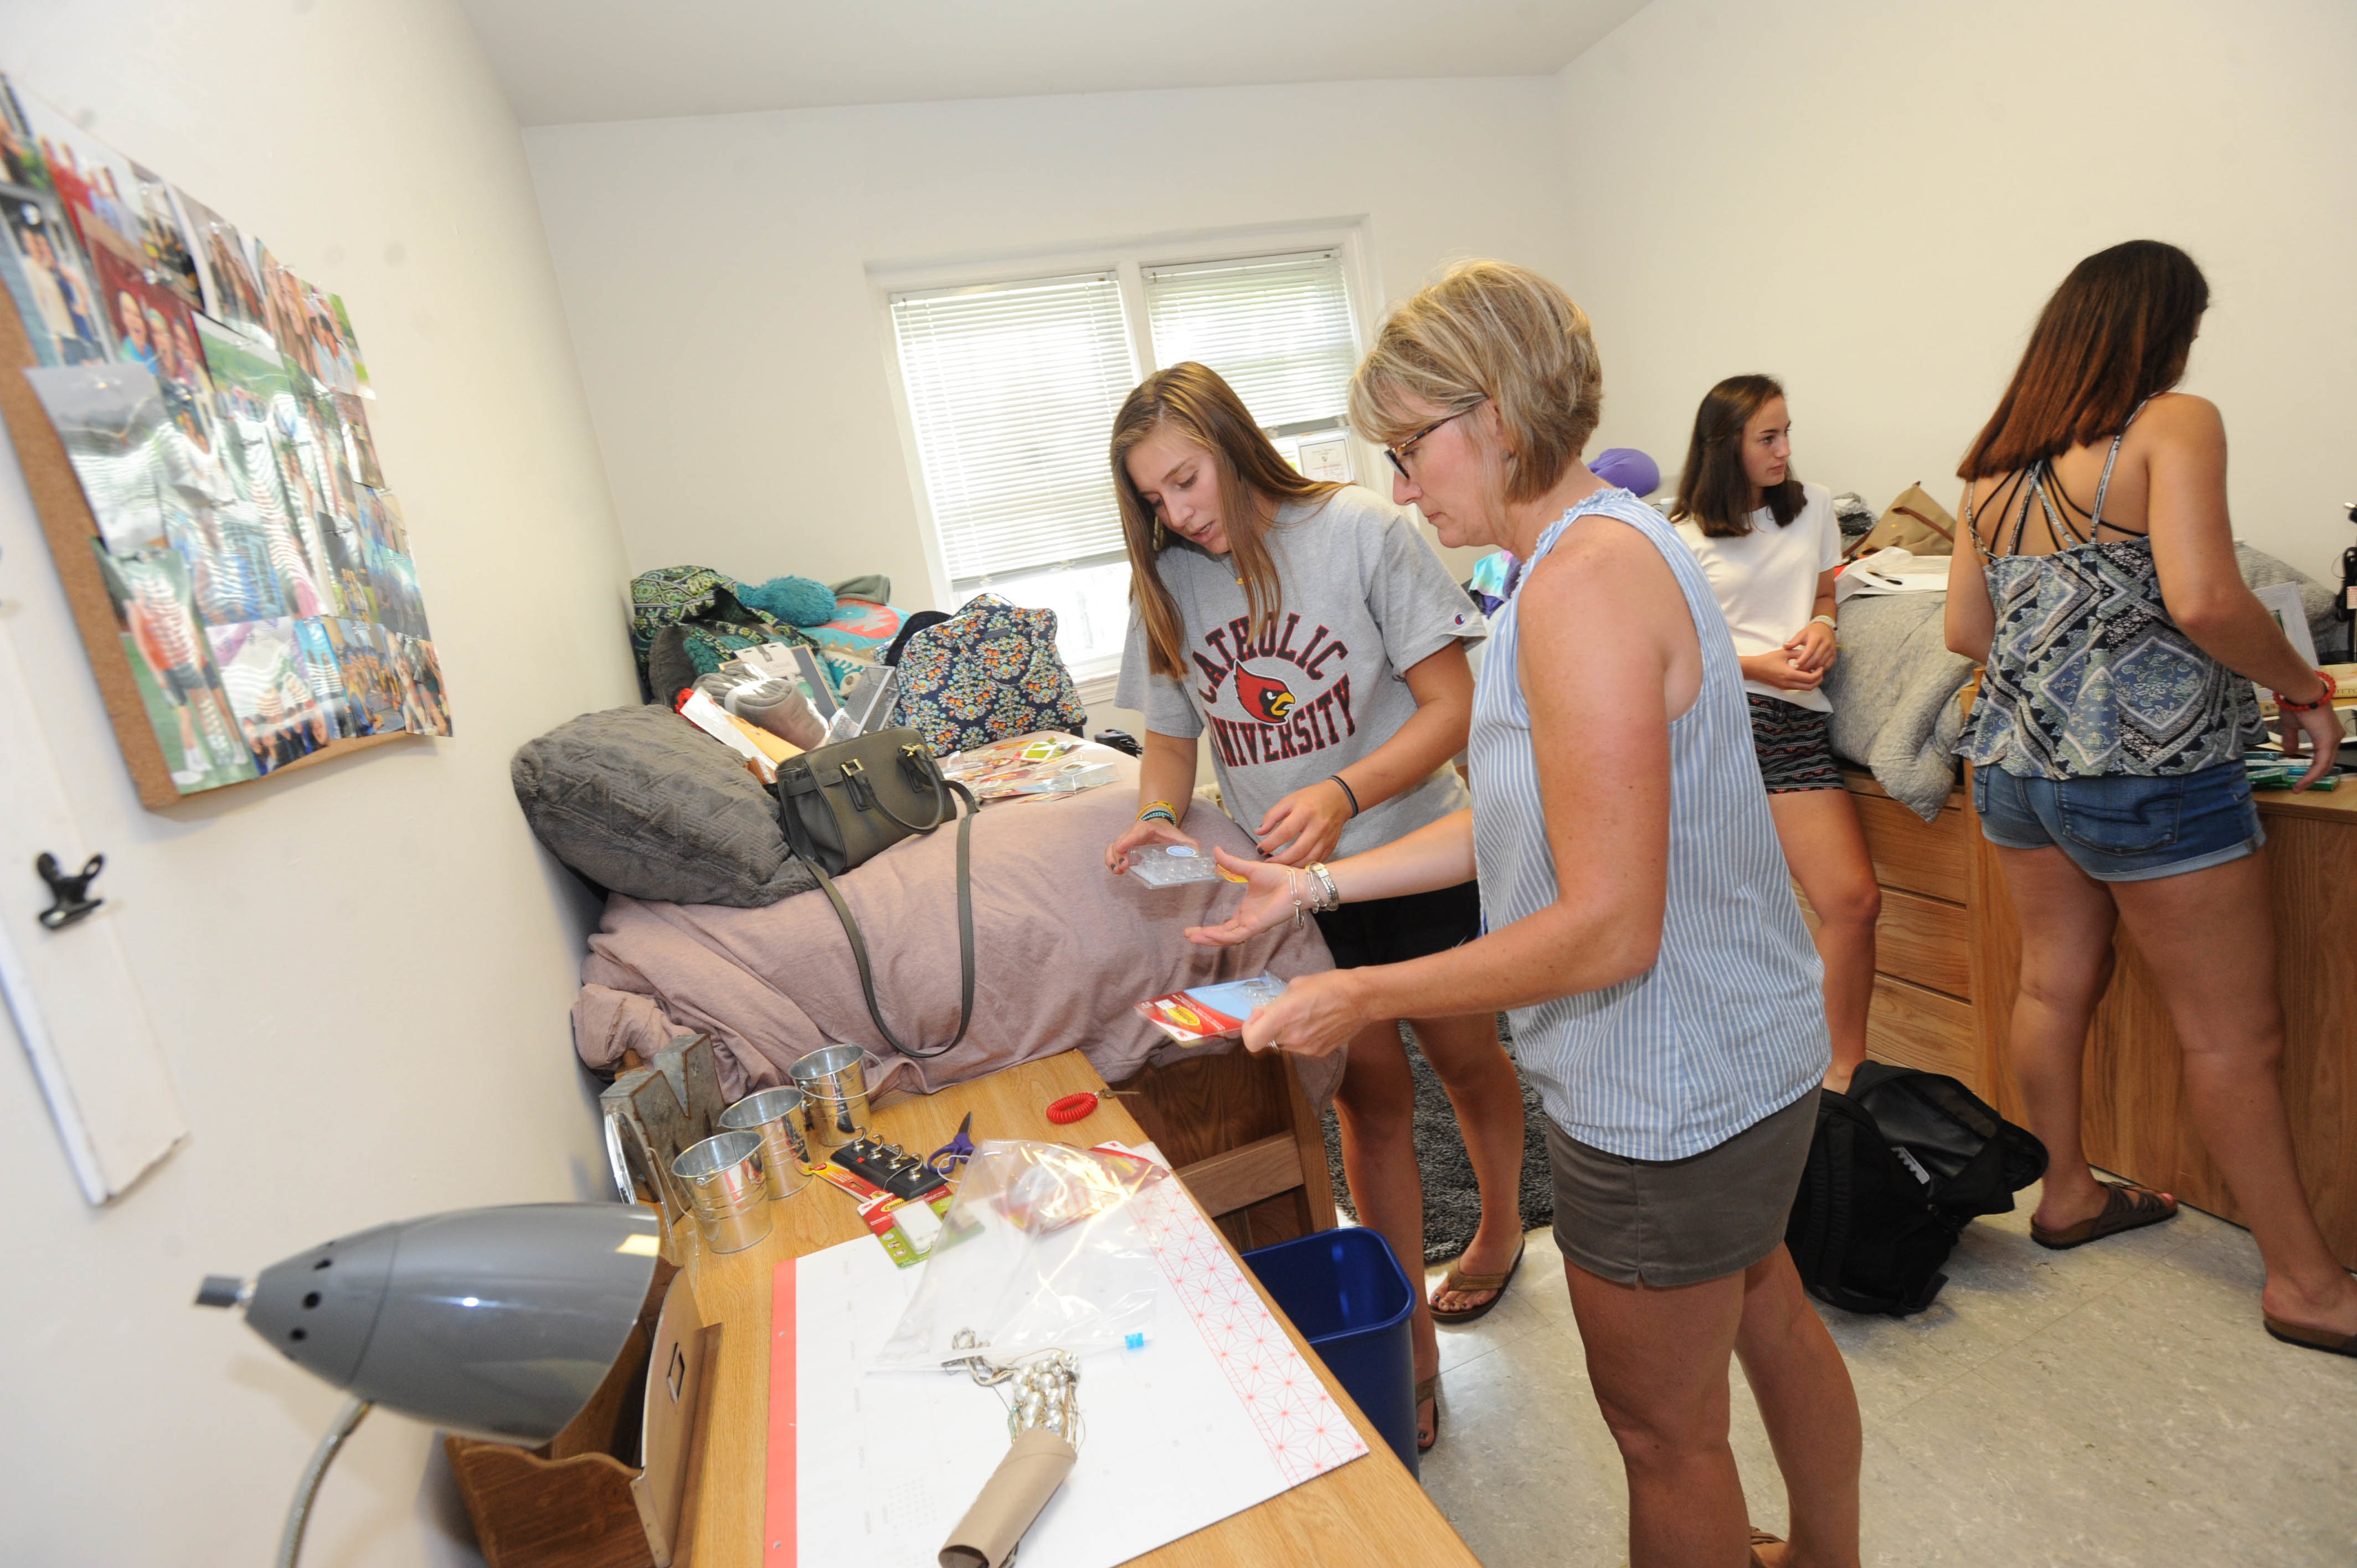 New students move in to Catholic University residence halls